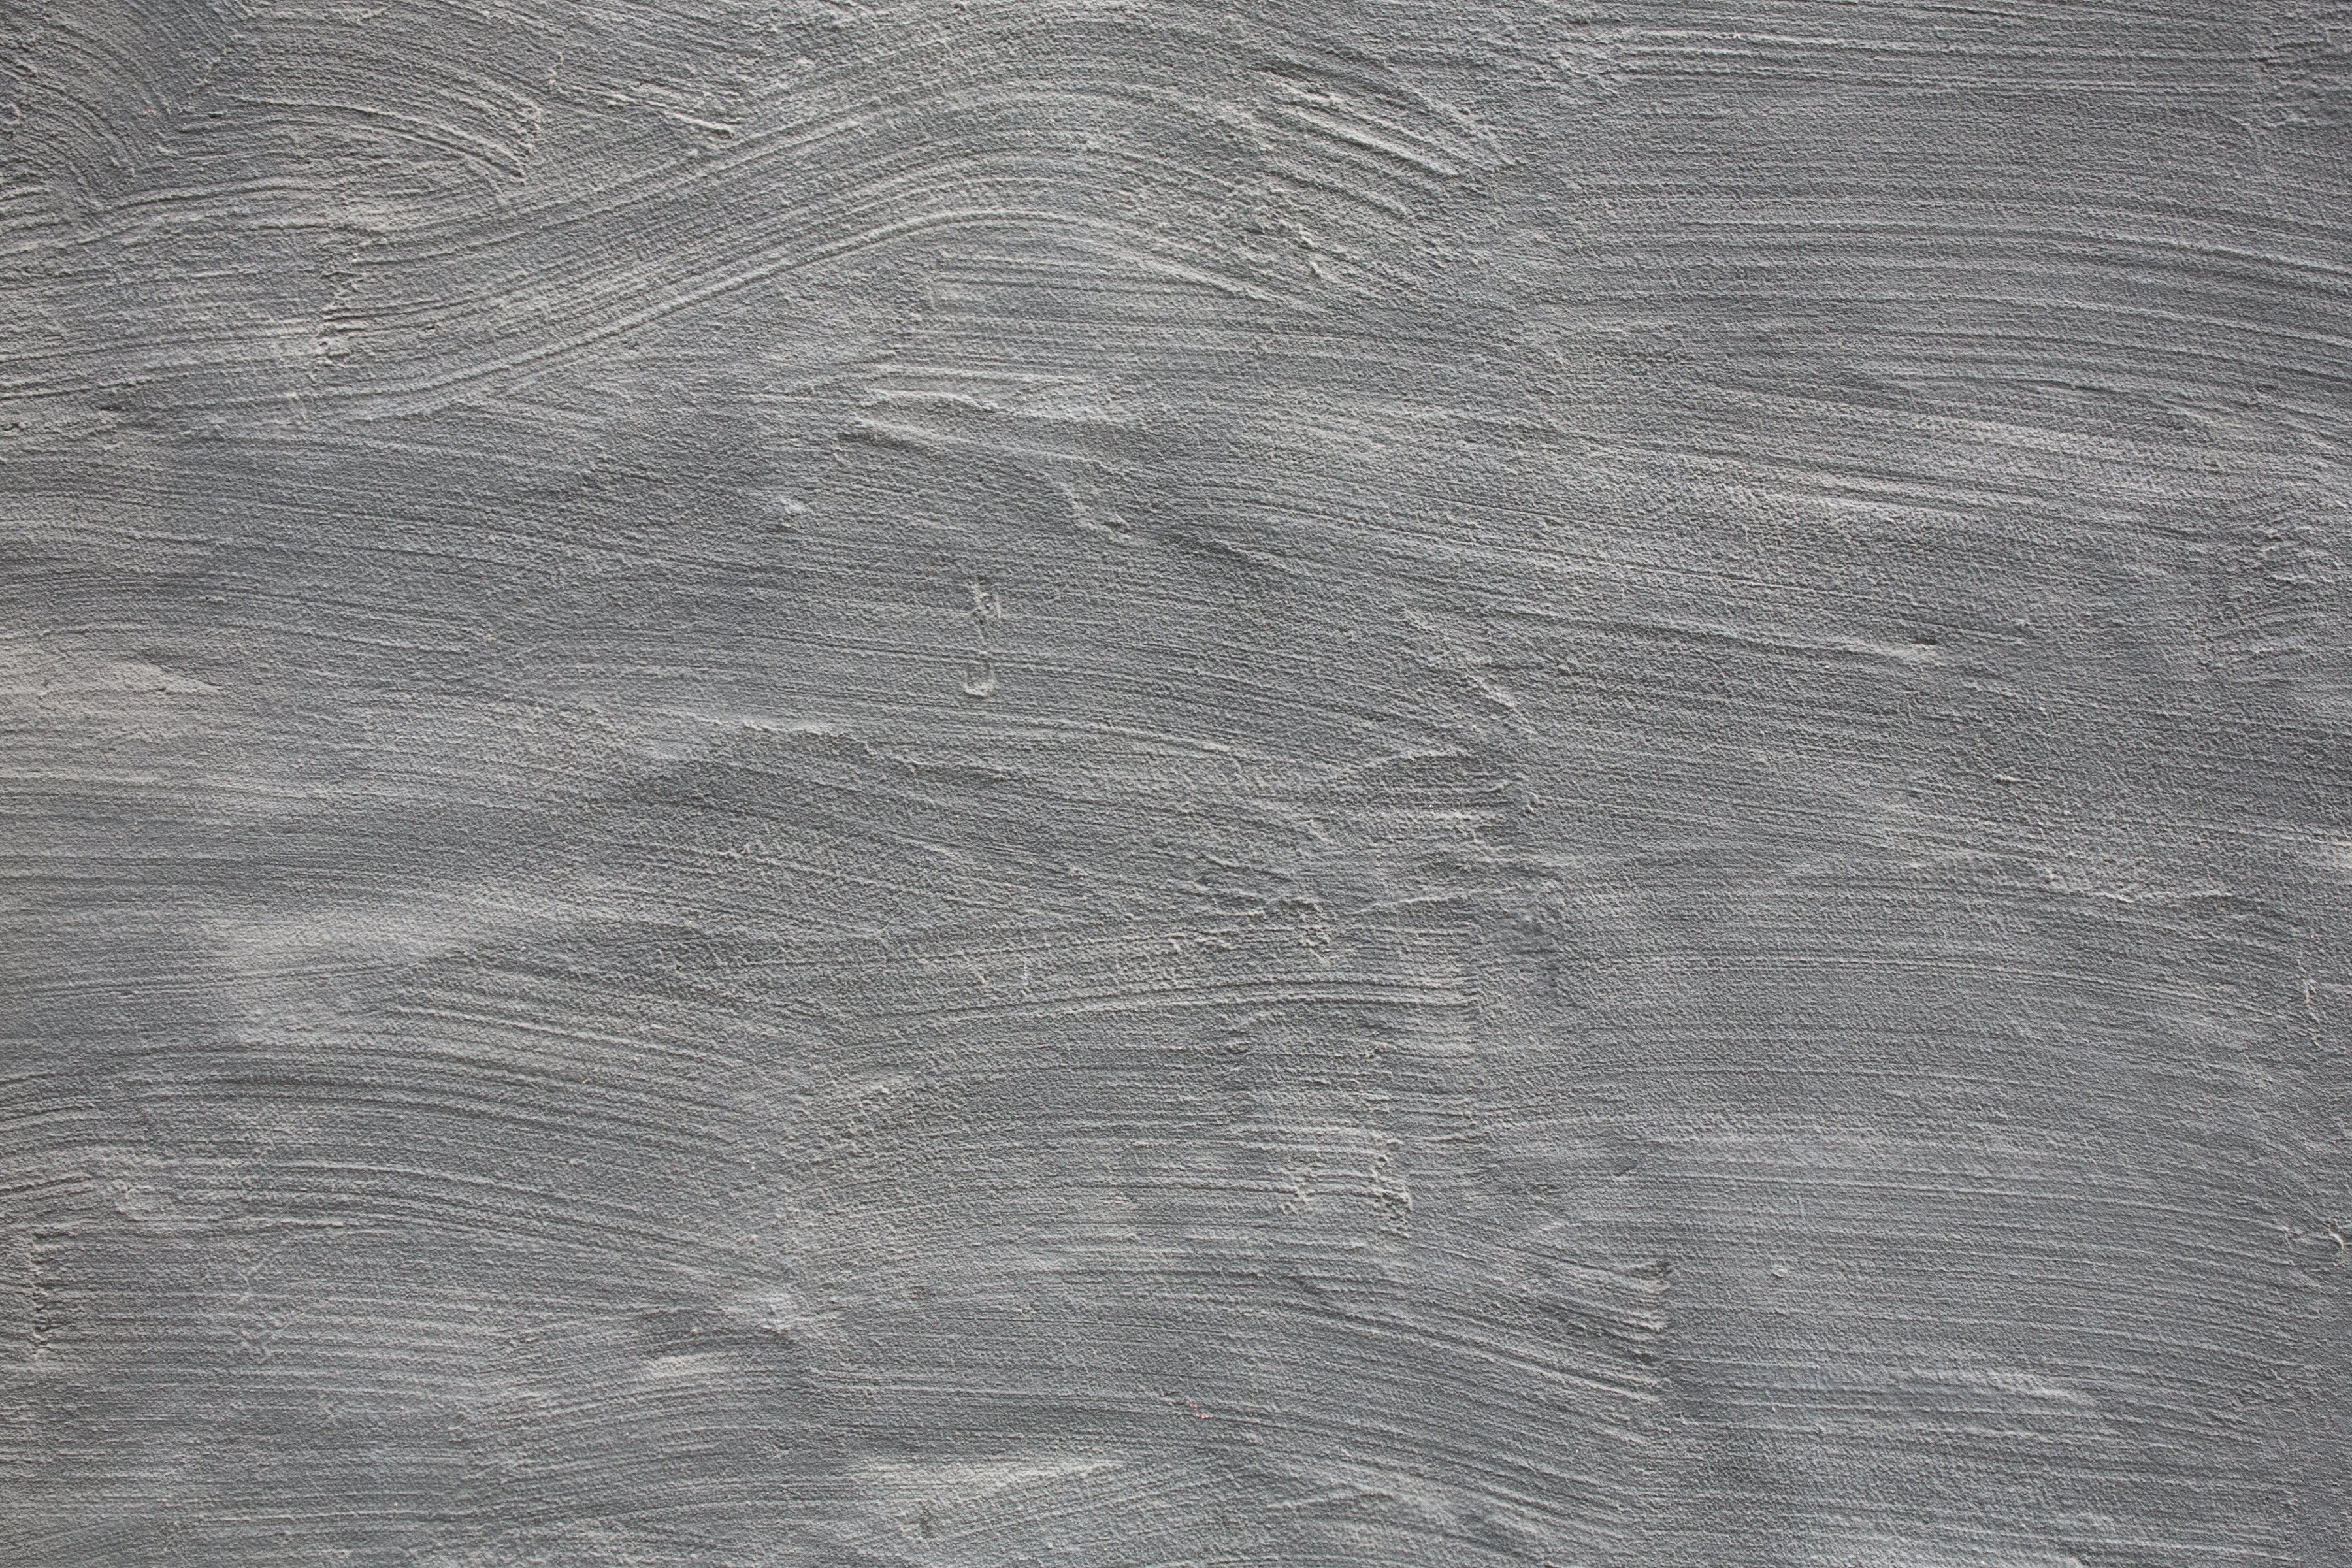 Hand Trowelled Grey Wall Surface